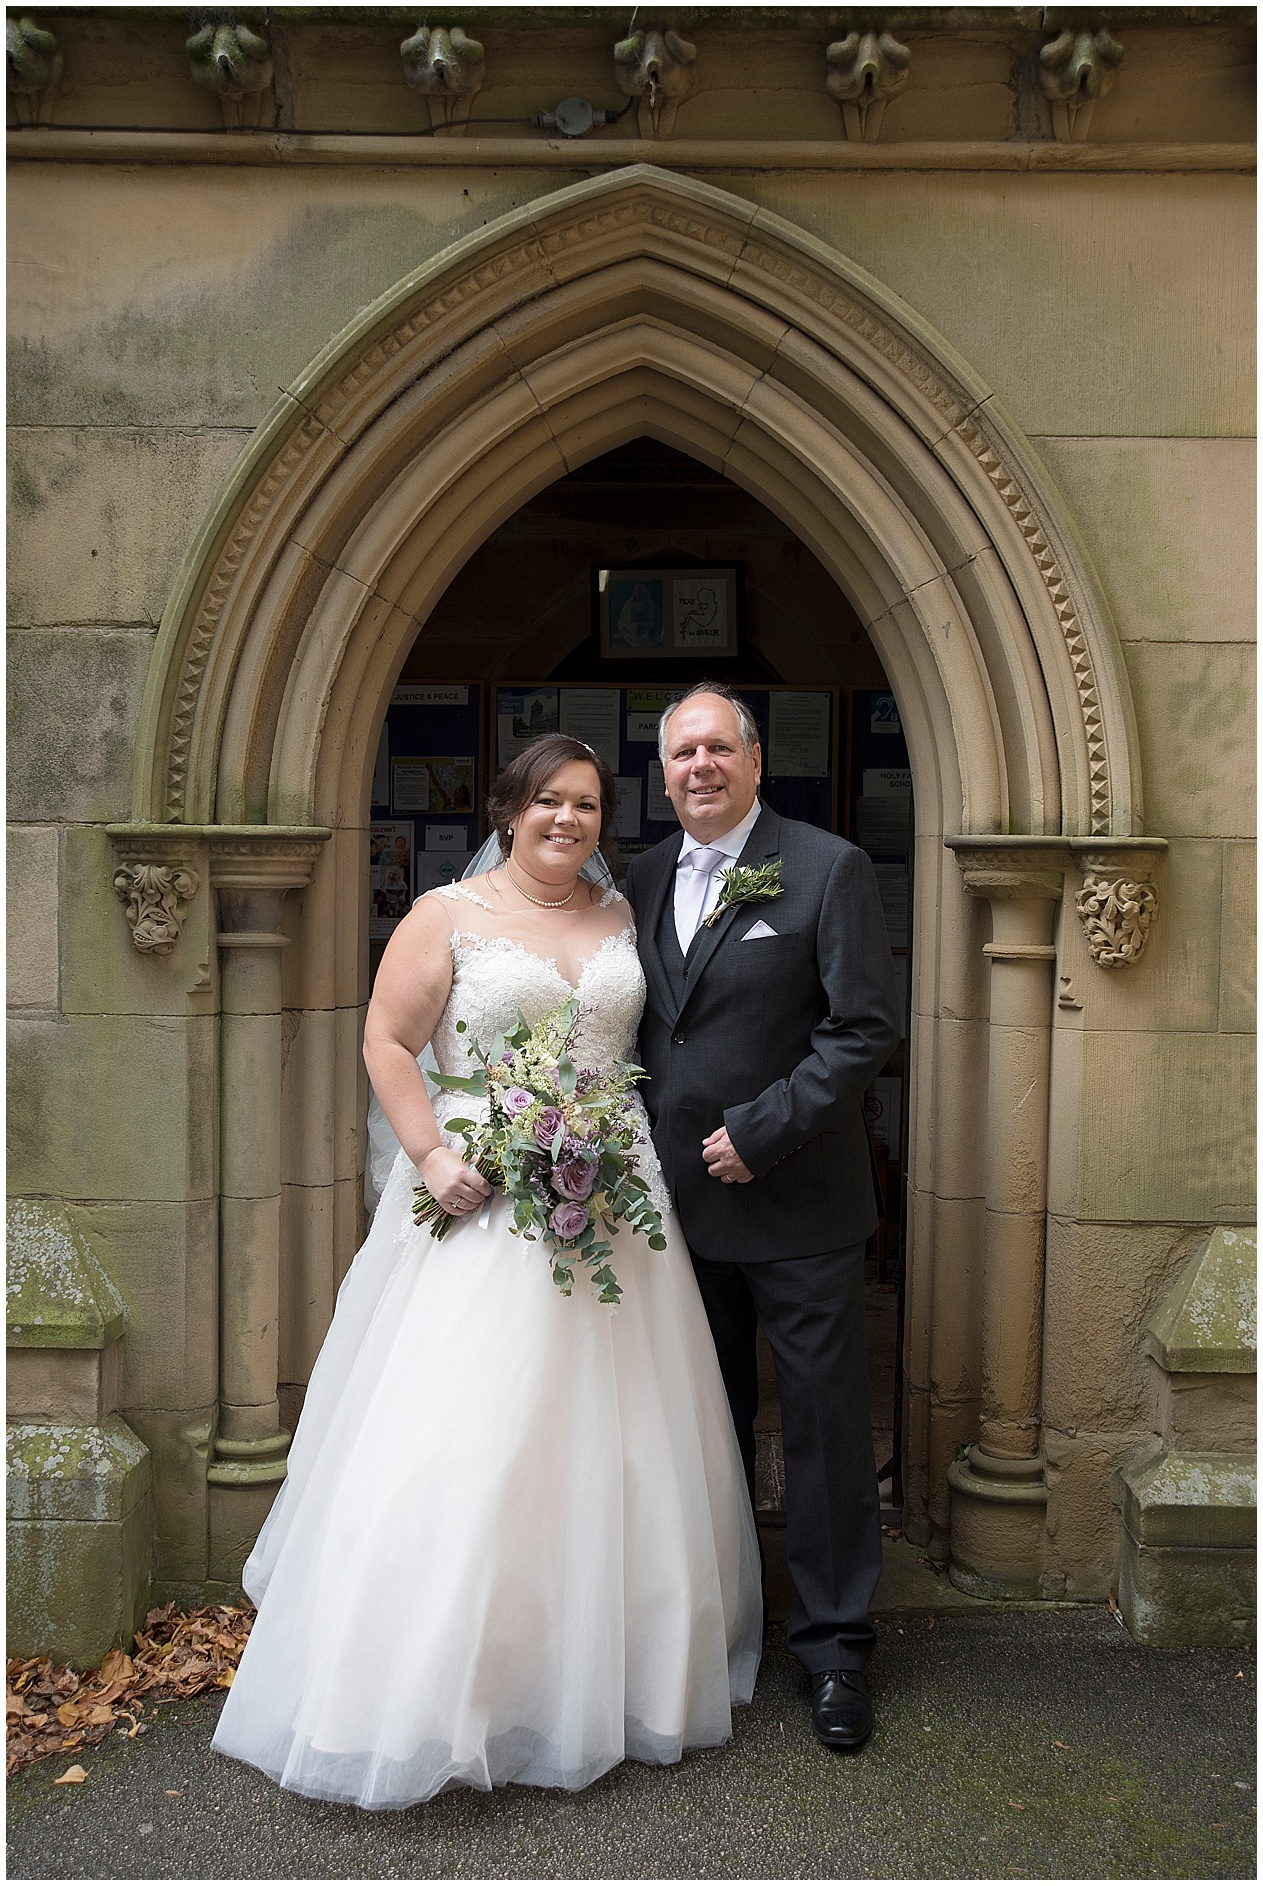 The bride photographed with her father outside church on her wedding day in Lancashire.